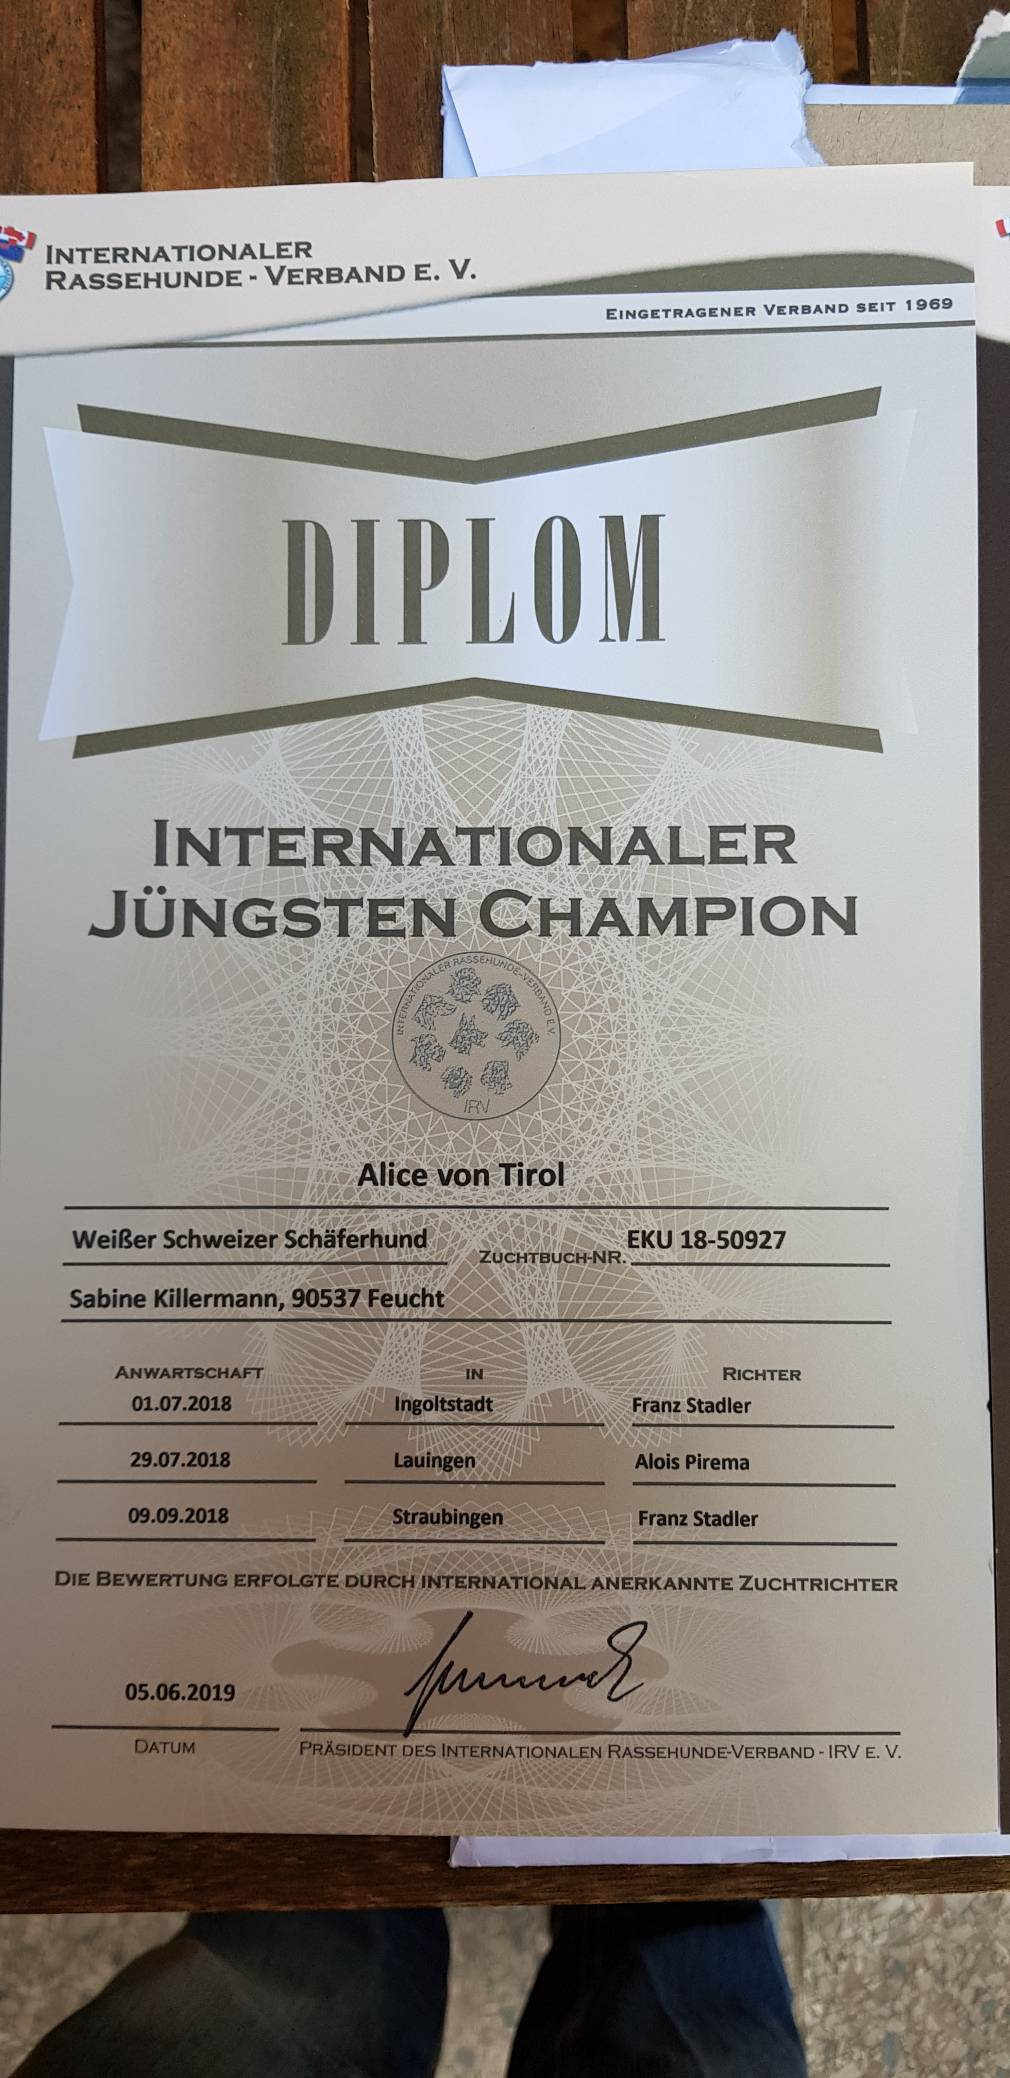 Internationaler Jüngsten Champion